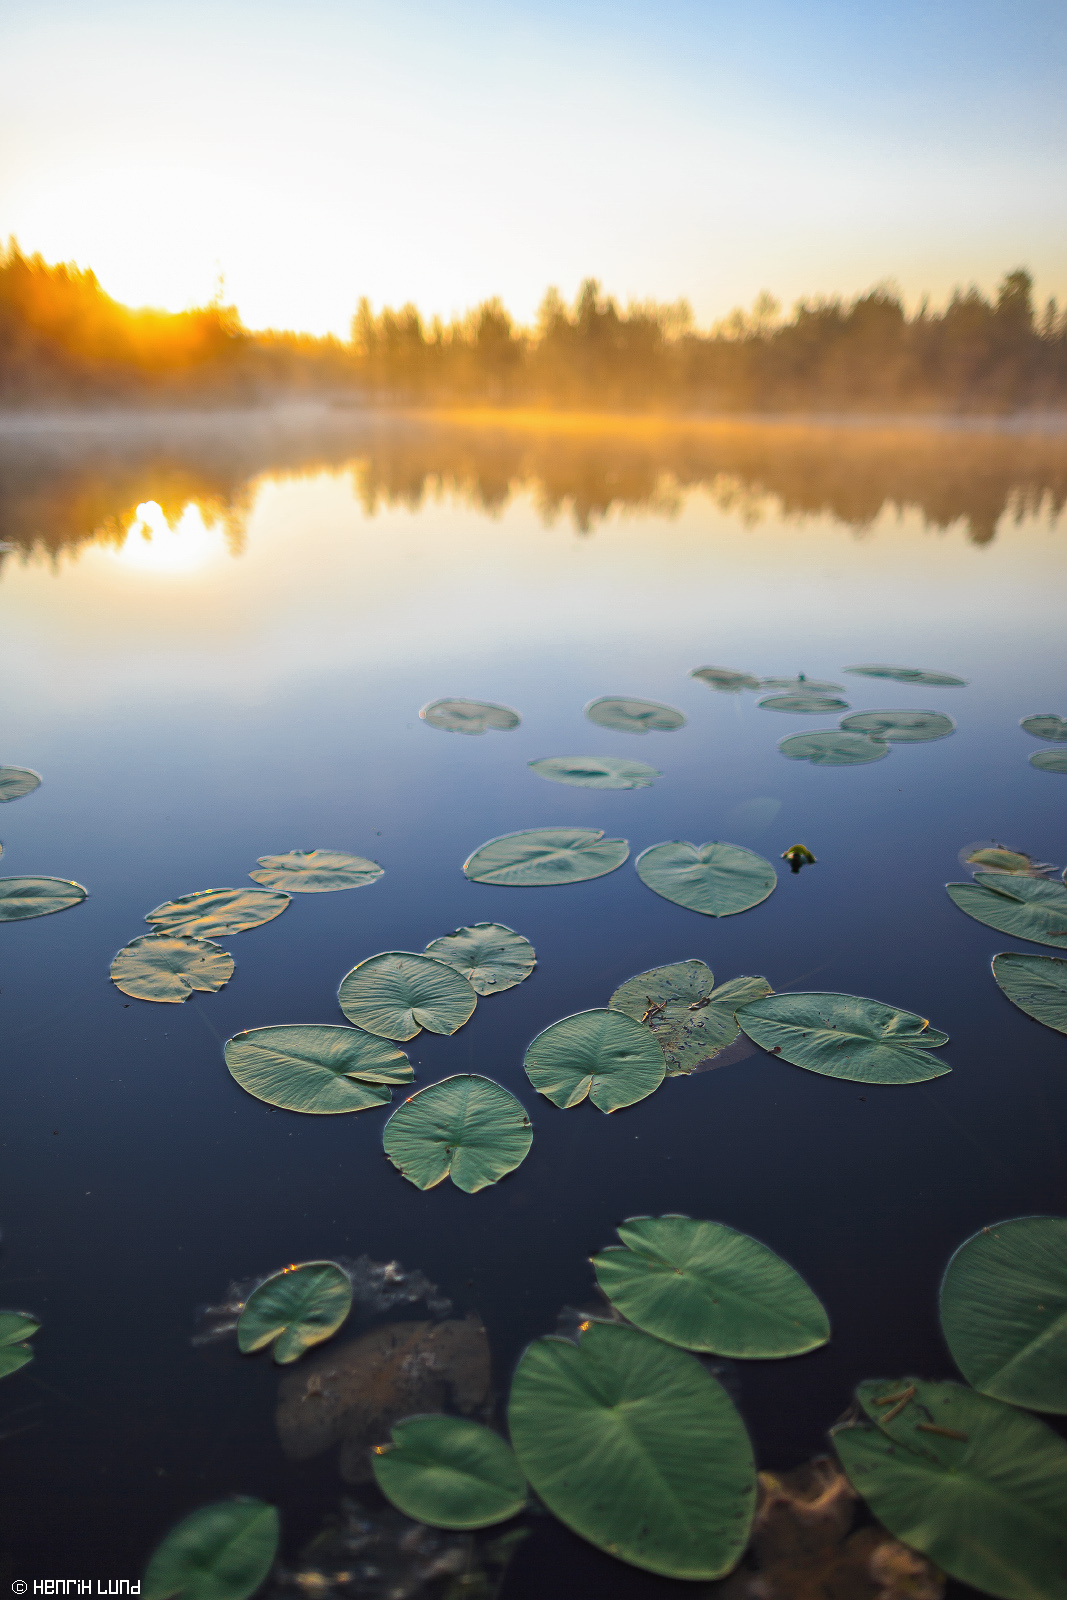 First rays of the morning sun at Mustalampi in Ilomantsi, Northern-Carelia, Finland. August 2014.